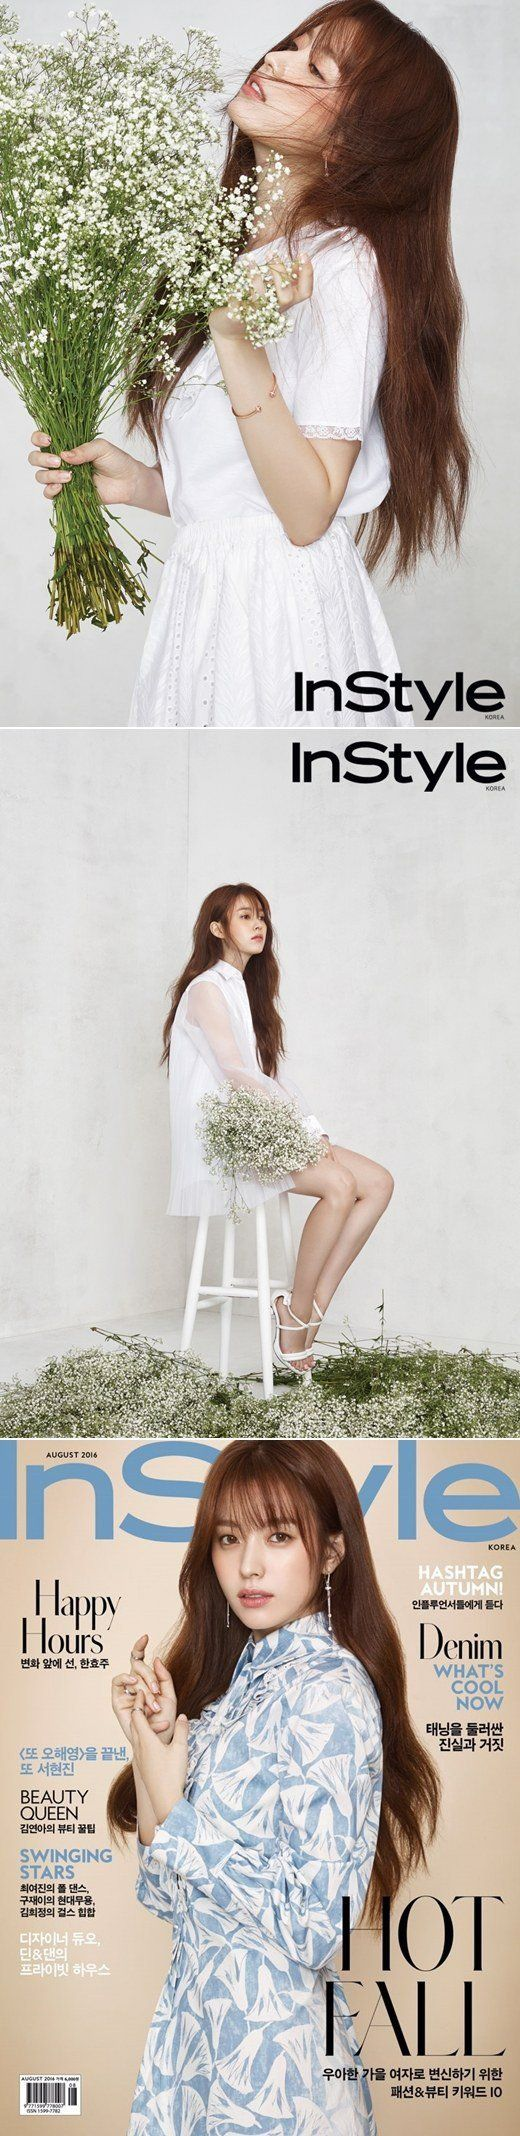 After 'InStyle' dropped the cover image of their cover model Han Hyo Joo a few days earlier, they've…